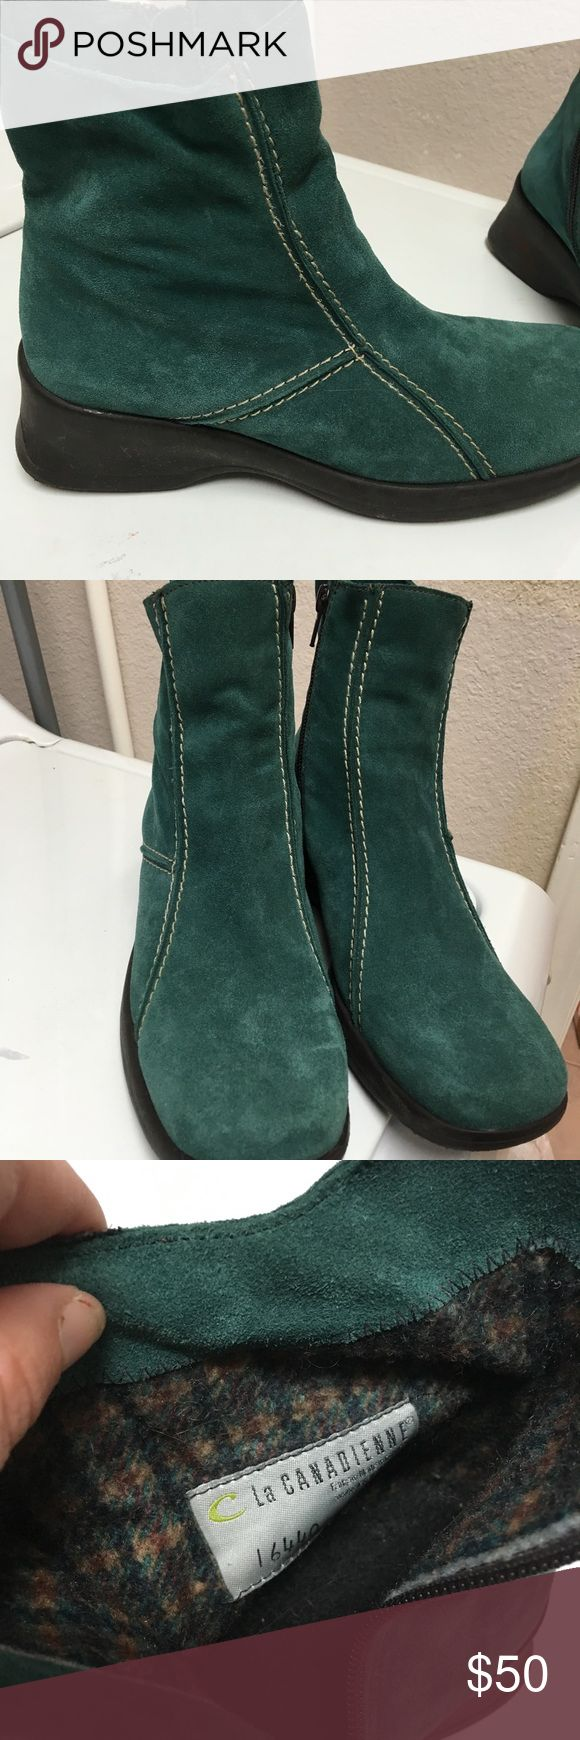 La Canadienne size 8 suede booties Dole says waterproof. Never worn pair of suede ankle boots in teal. Wedge heel, zips, nice flannel lining. Made in Canada. Size 8 la canadienne Shoes Ankle Boots & Booties